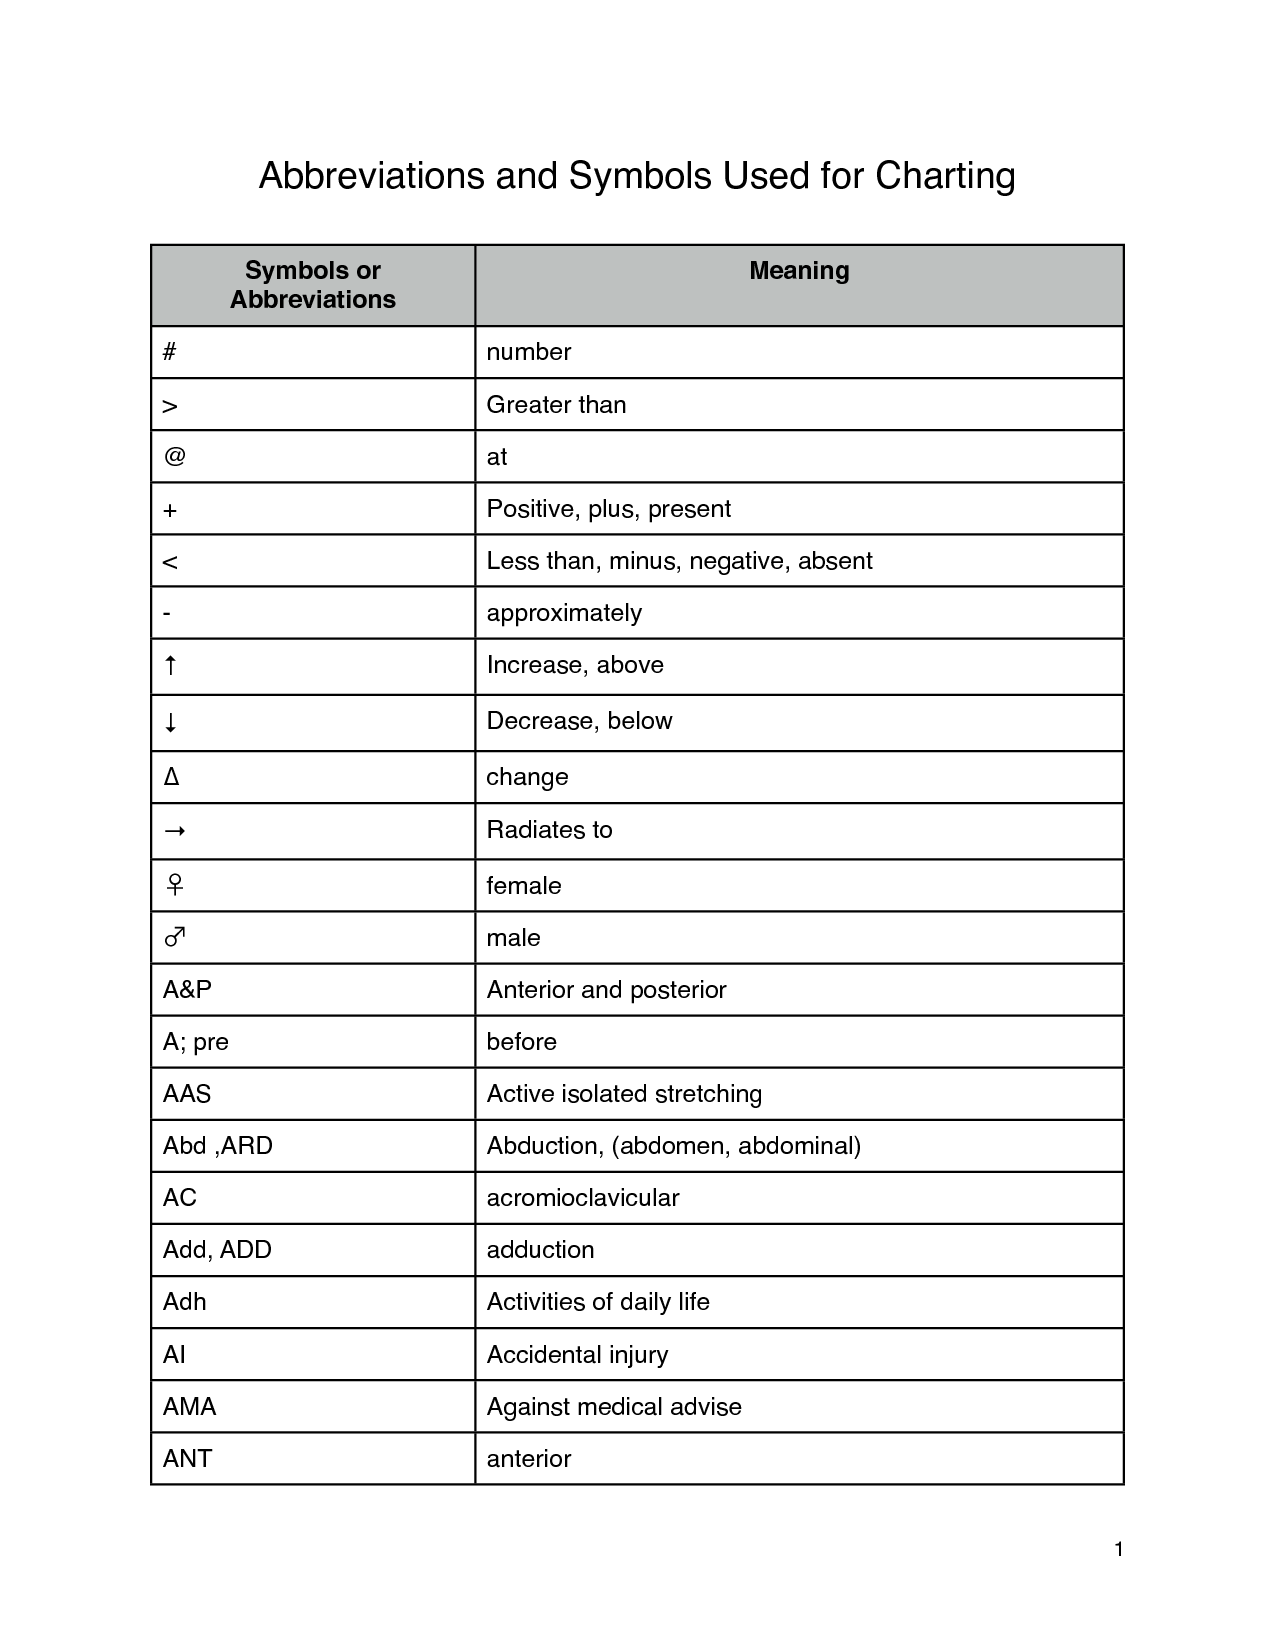 Medical charting symbols abbreviations and symbols used for medical charting symbols abbreviations and symbols used for charting symbols or meaning buycottarizona